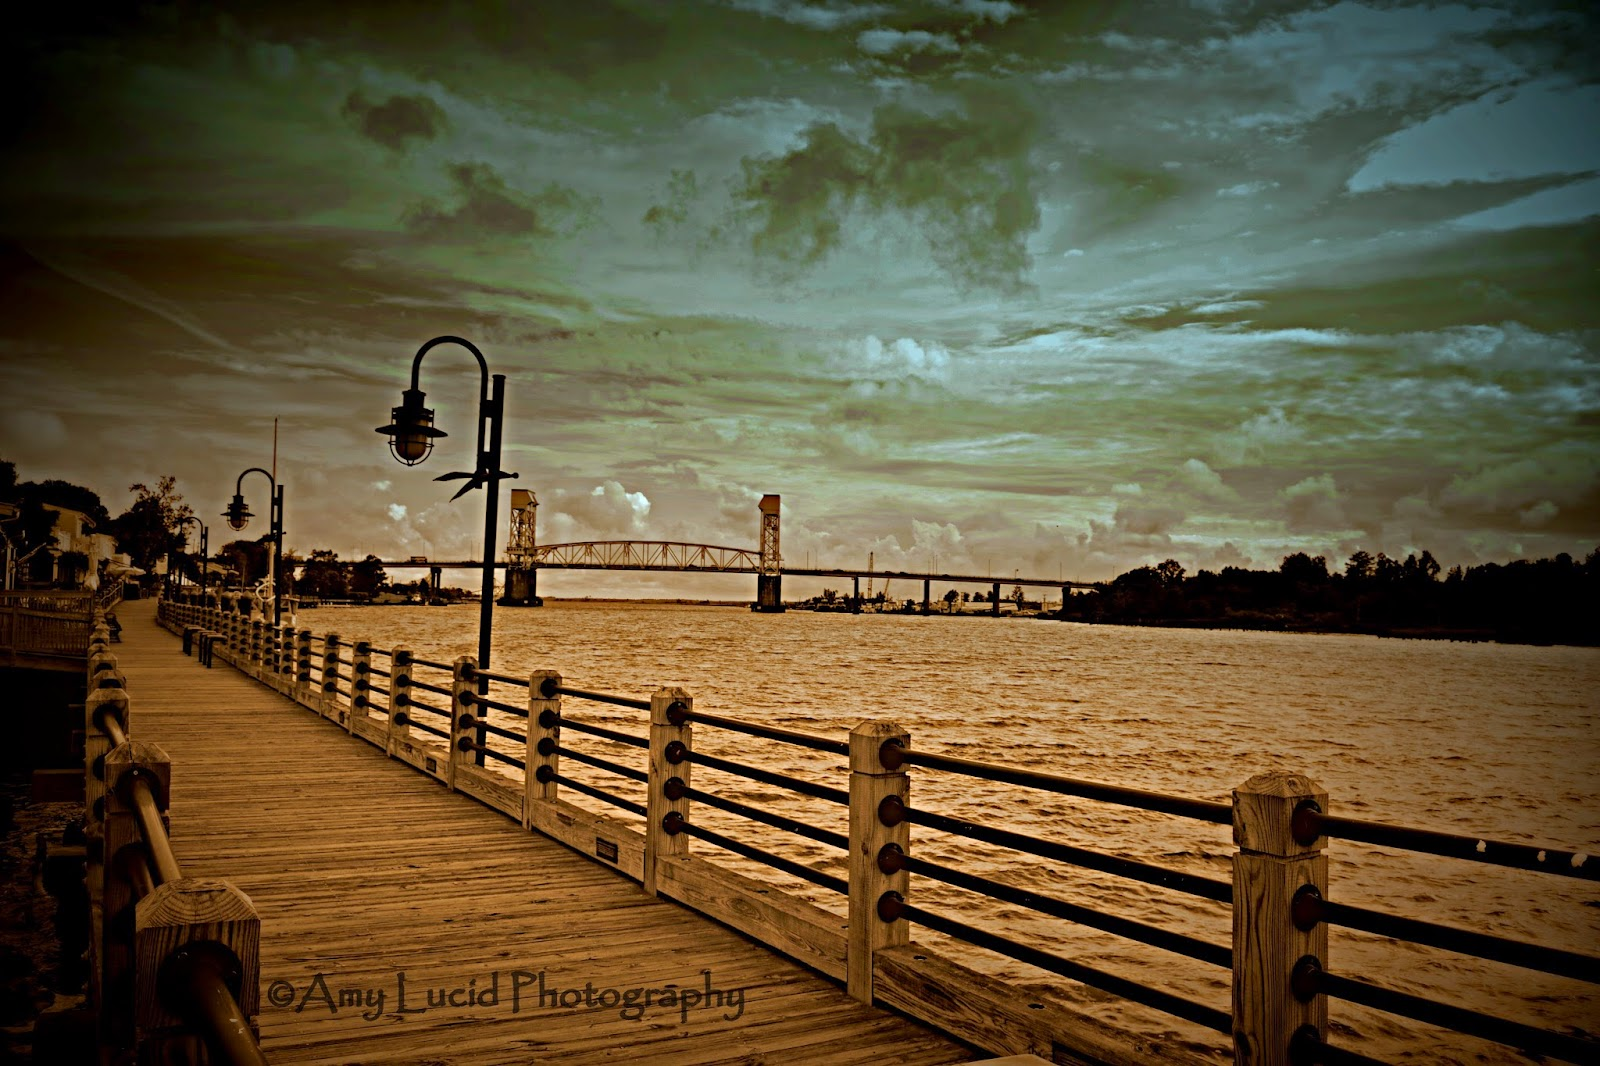 Amy Lucid Photography And Jewelry Designs Landscape Photography A